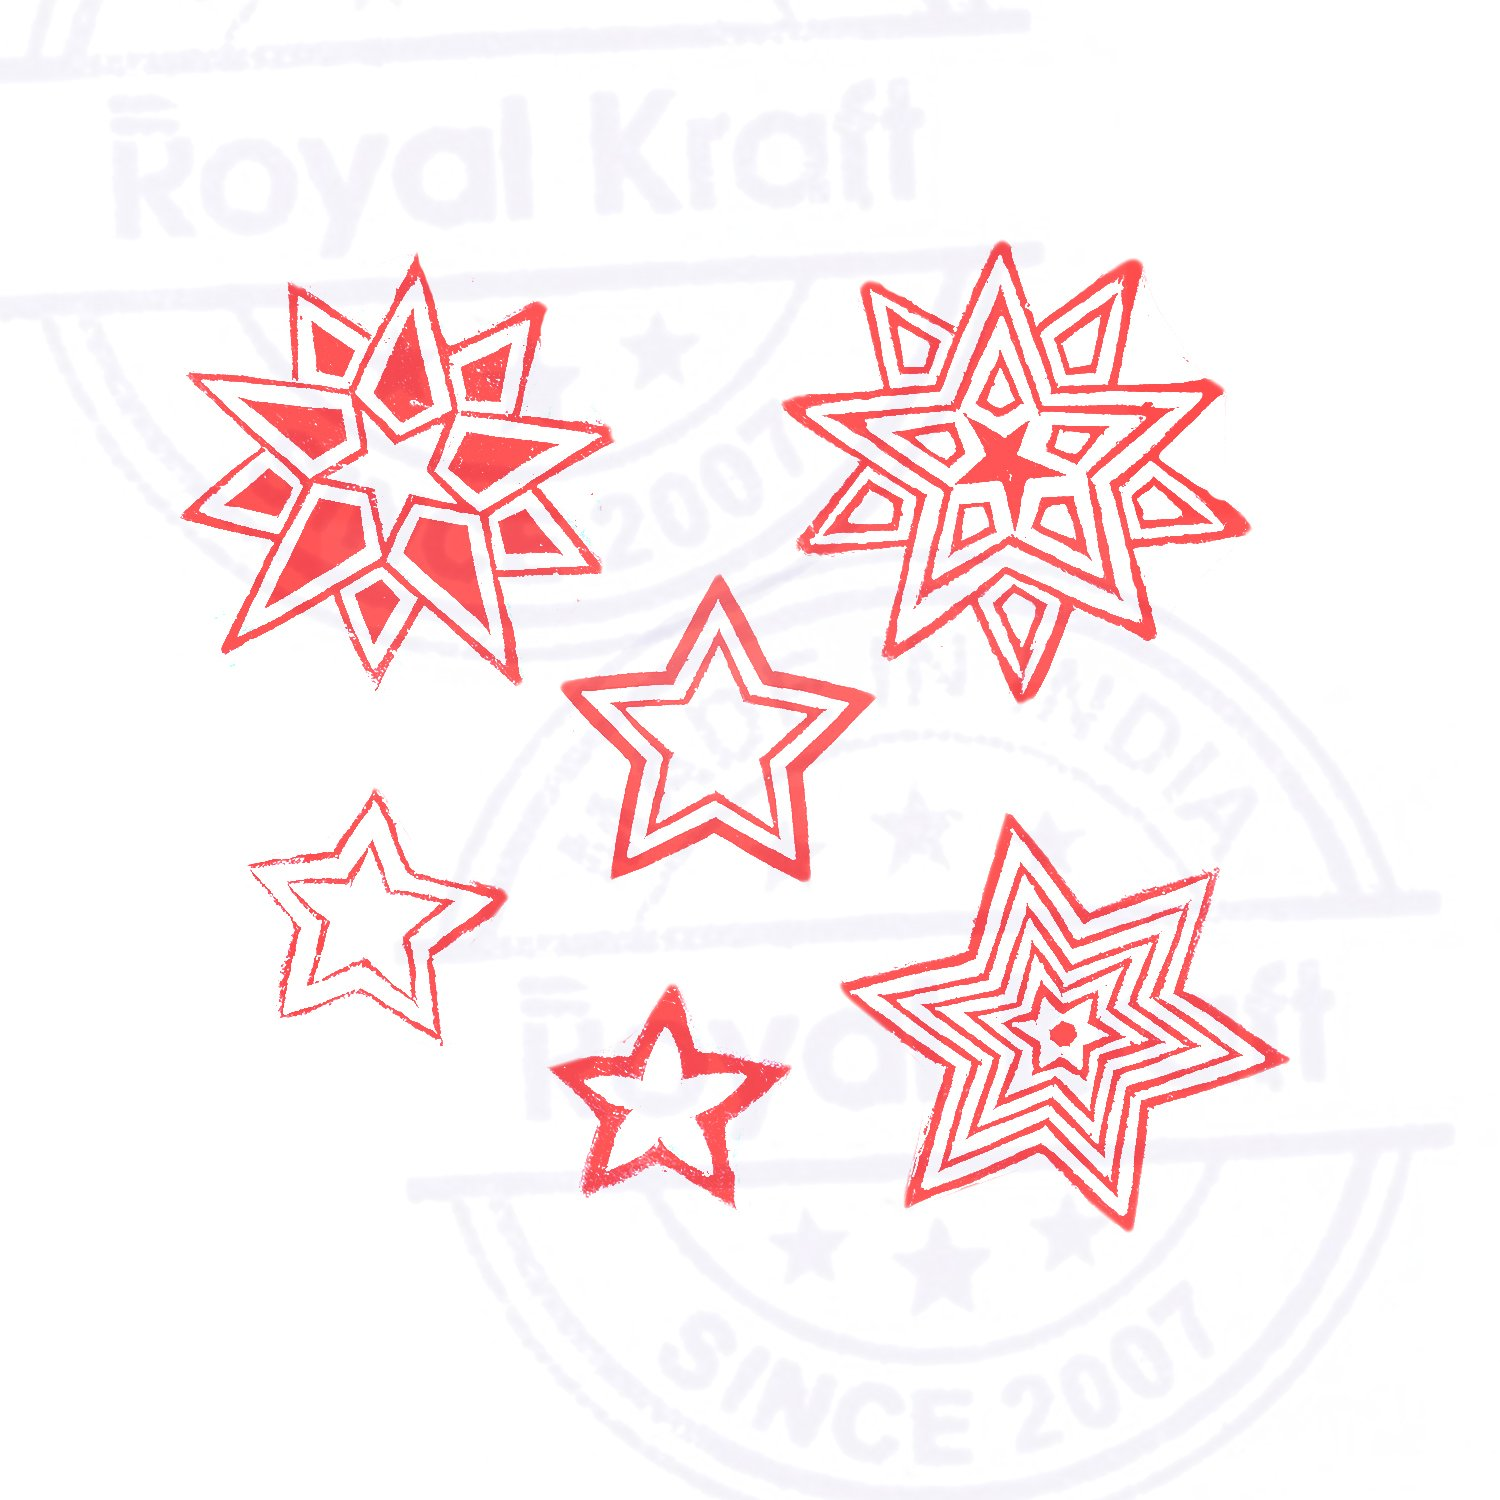 Set of 6 Royal Kraft Star Design Printing Blocks Textile Block Prints to Make Henna Tattoos Scrapbook /& Clay Projects